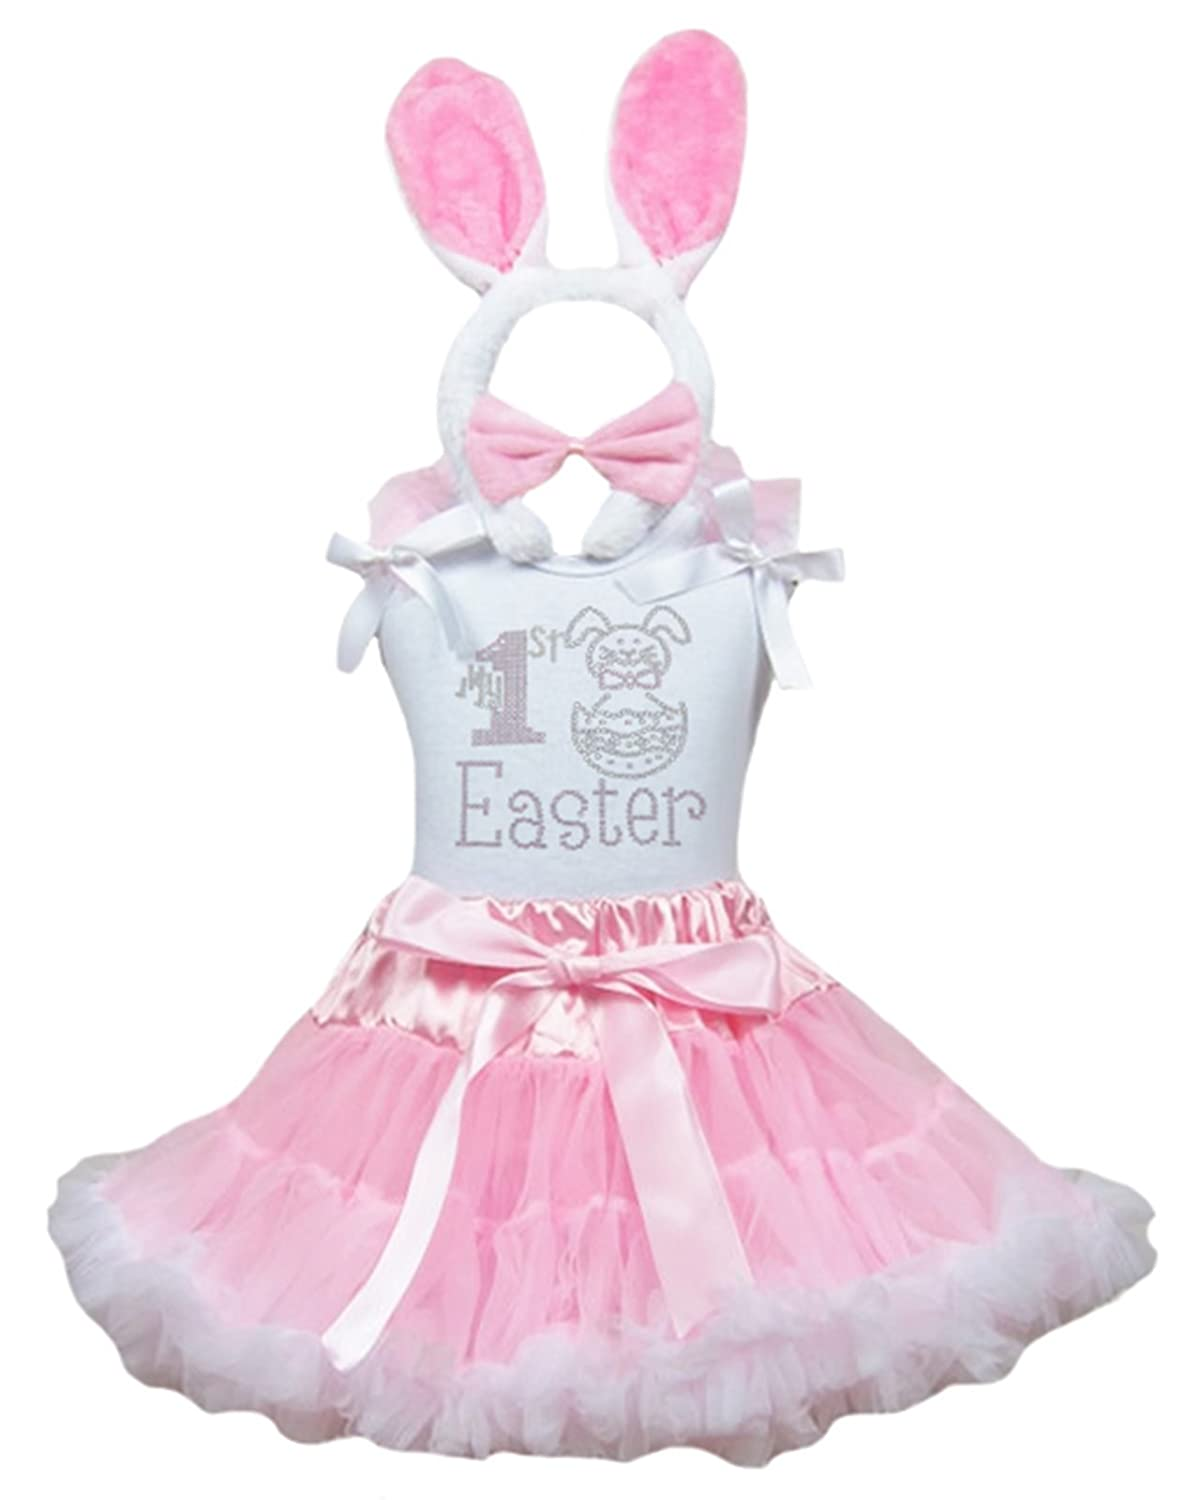 My 1st Easter Dress Rabbit Egg Shirt Pink White Skirt Rabbit Outfit Set 1-8y